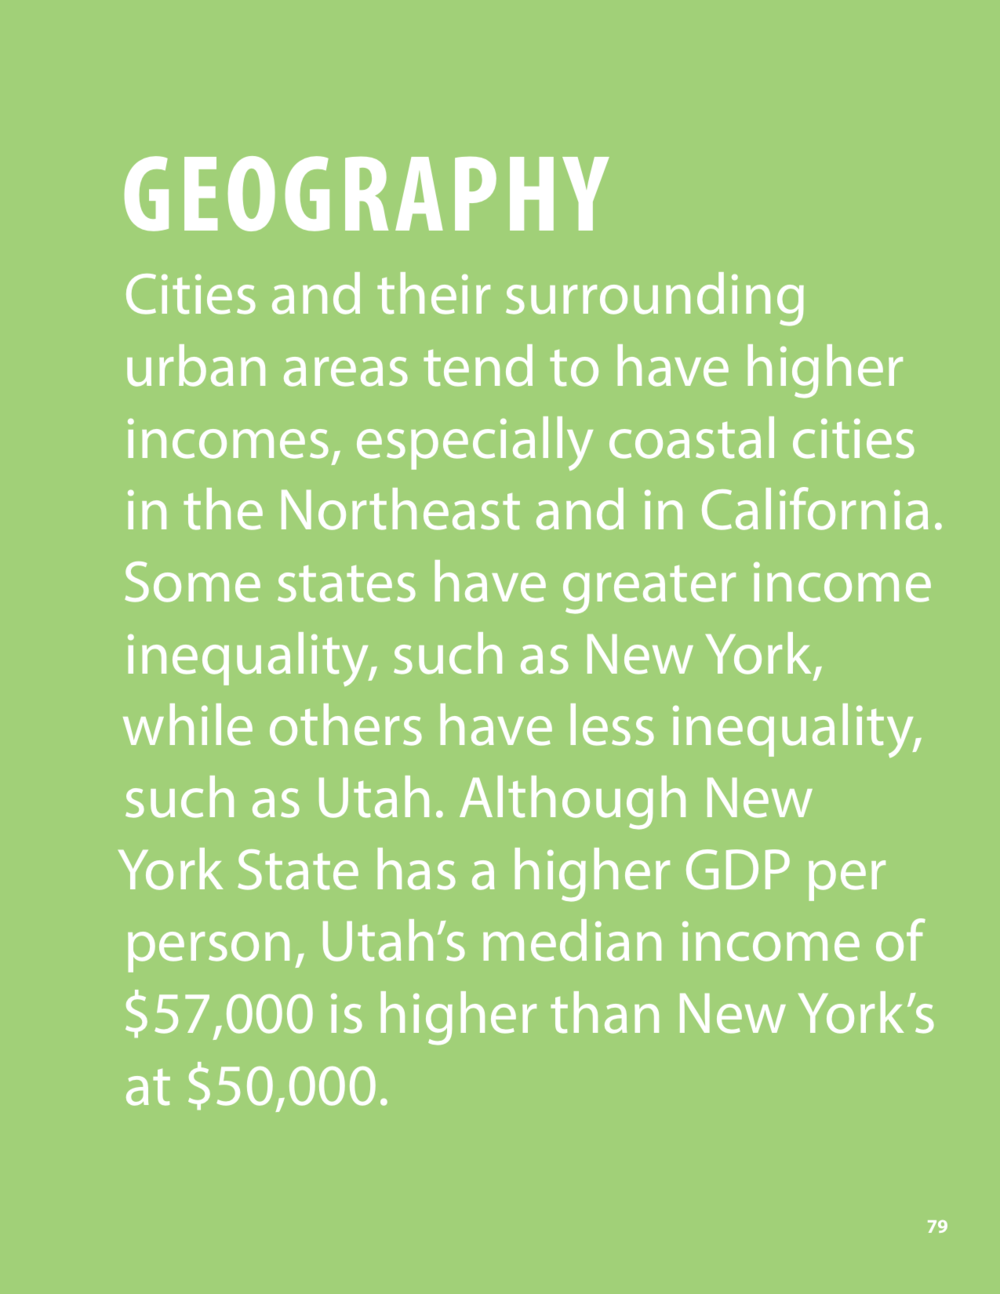 IncomeGuide_2013_Jan17_RGB_page 79_79.png